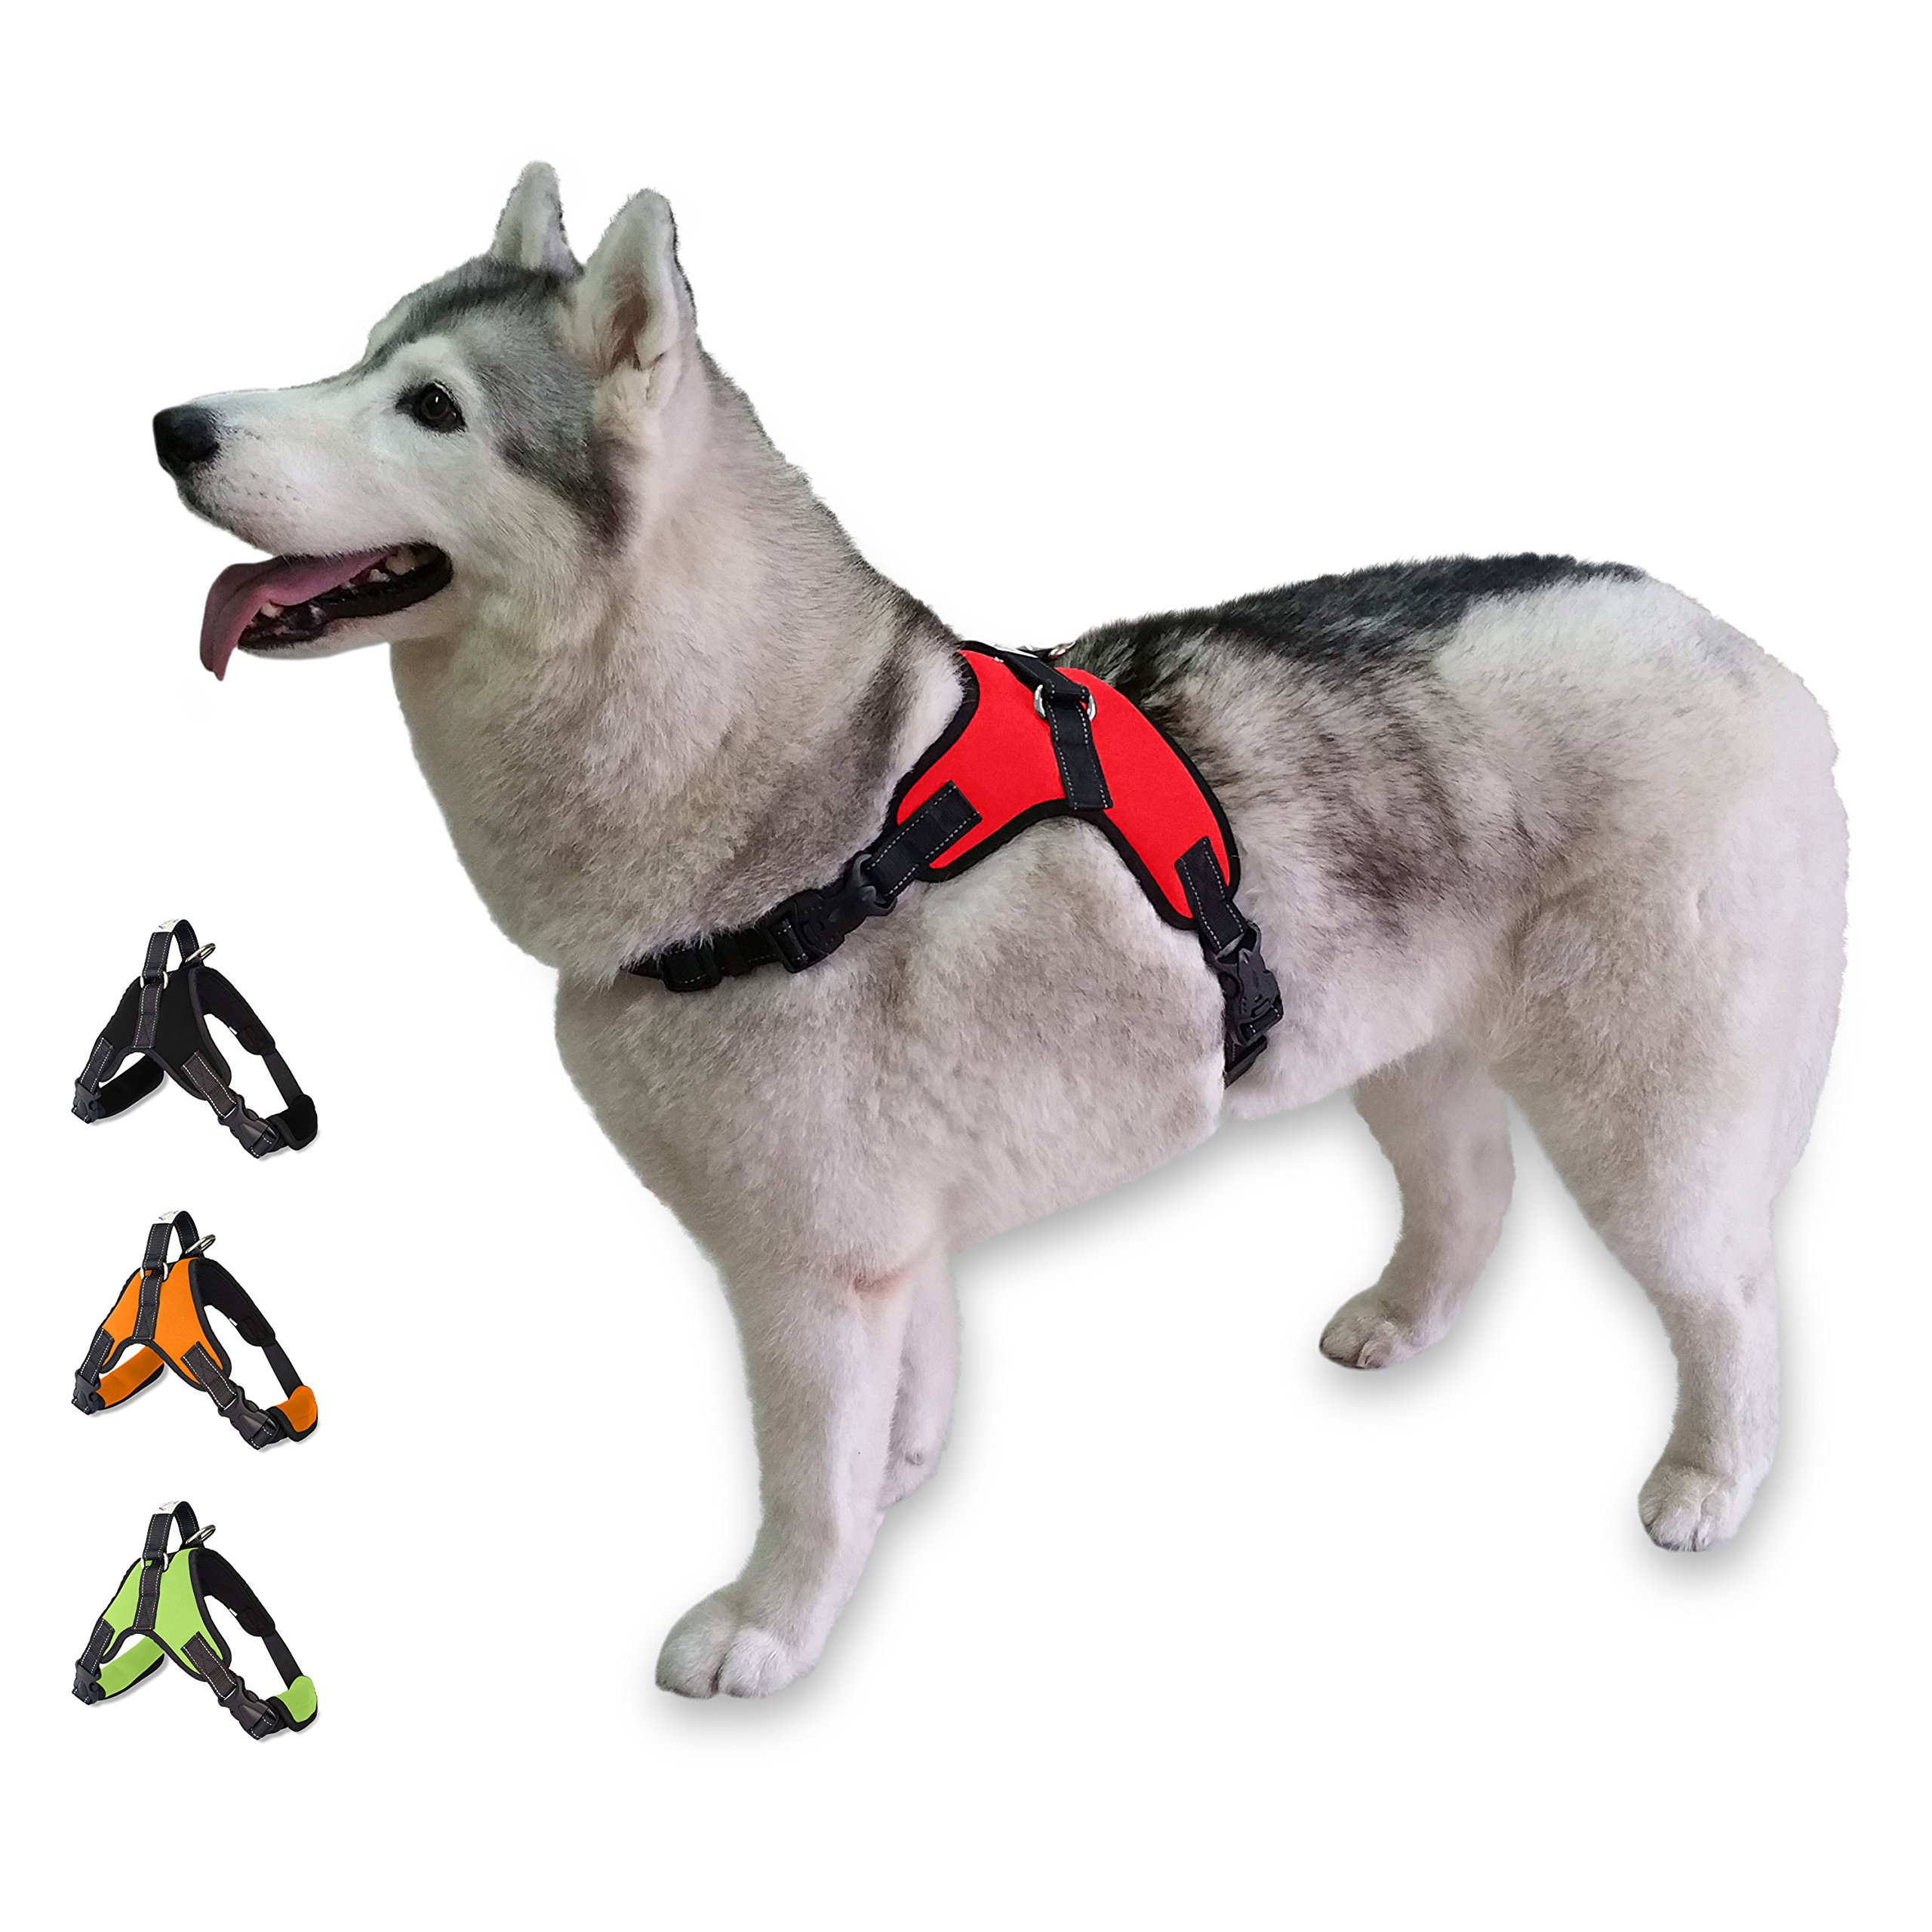 Cosy Meadow Escape Proof Dog Harness - Padded No Pull Everyday Soft Sport Vest | Secure To Car Seat Belt | No Choke | Sturdy Handle | 2018 New & Improved | Prime | Red XS Extra Small Breed